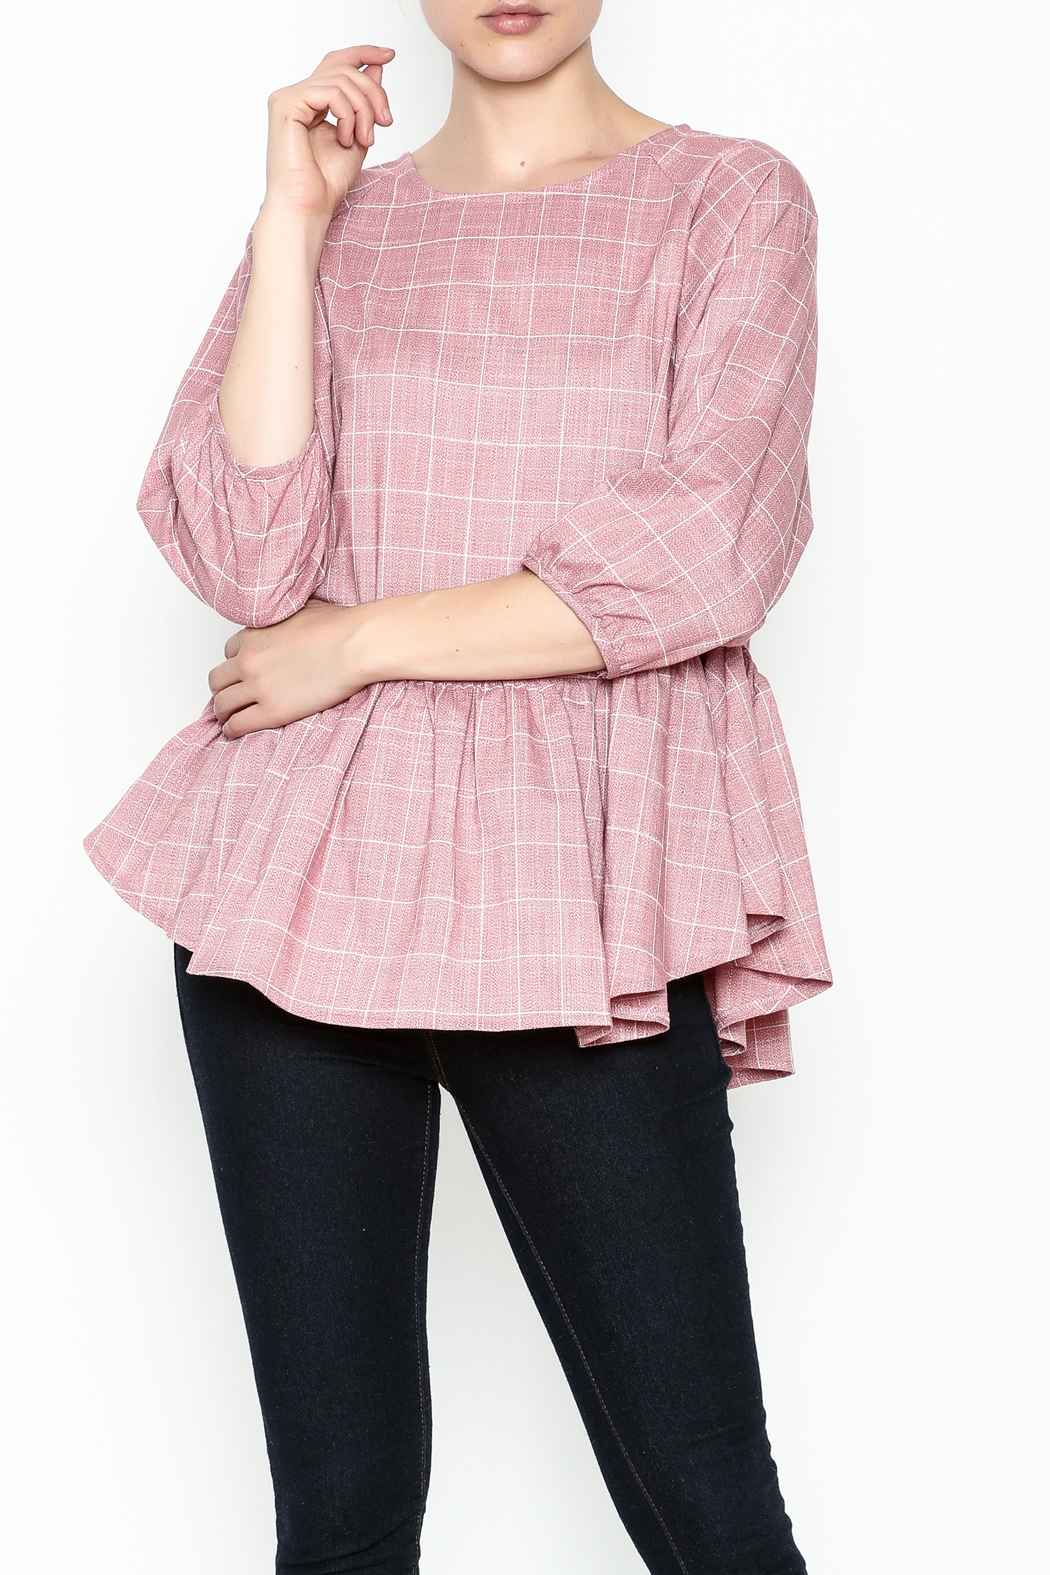 FRNCH Check Peplum Blouse - Main Image